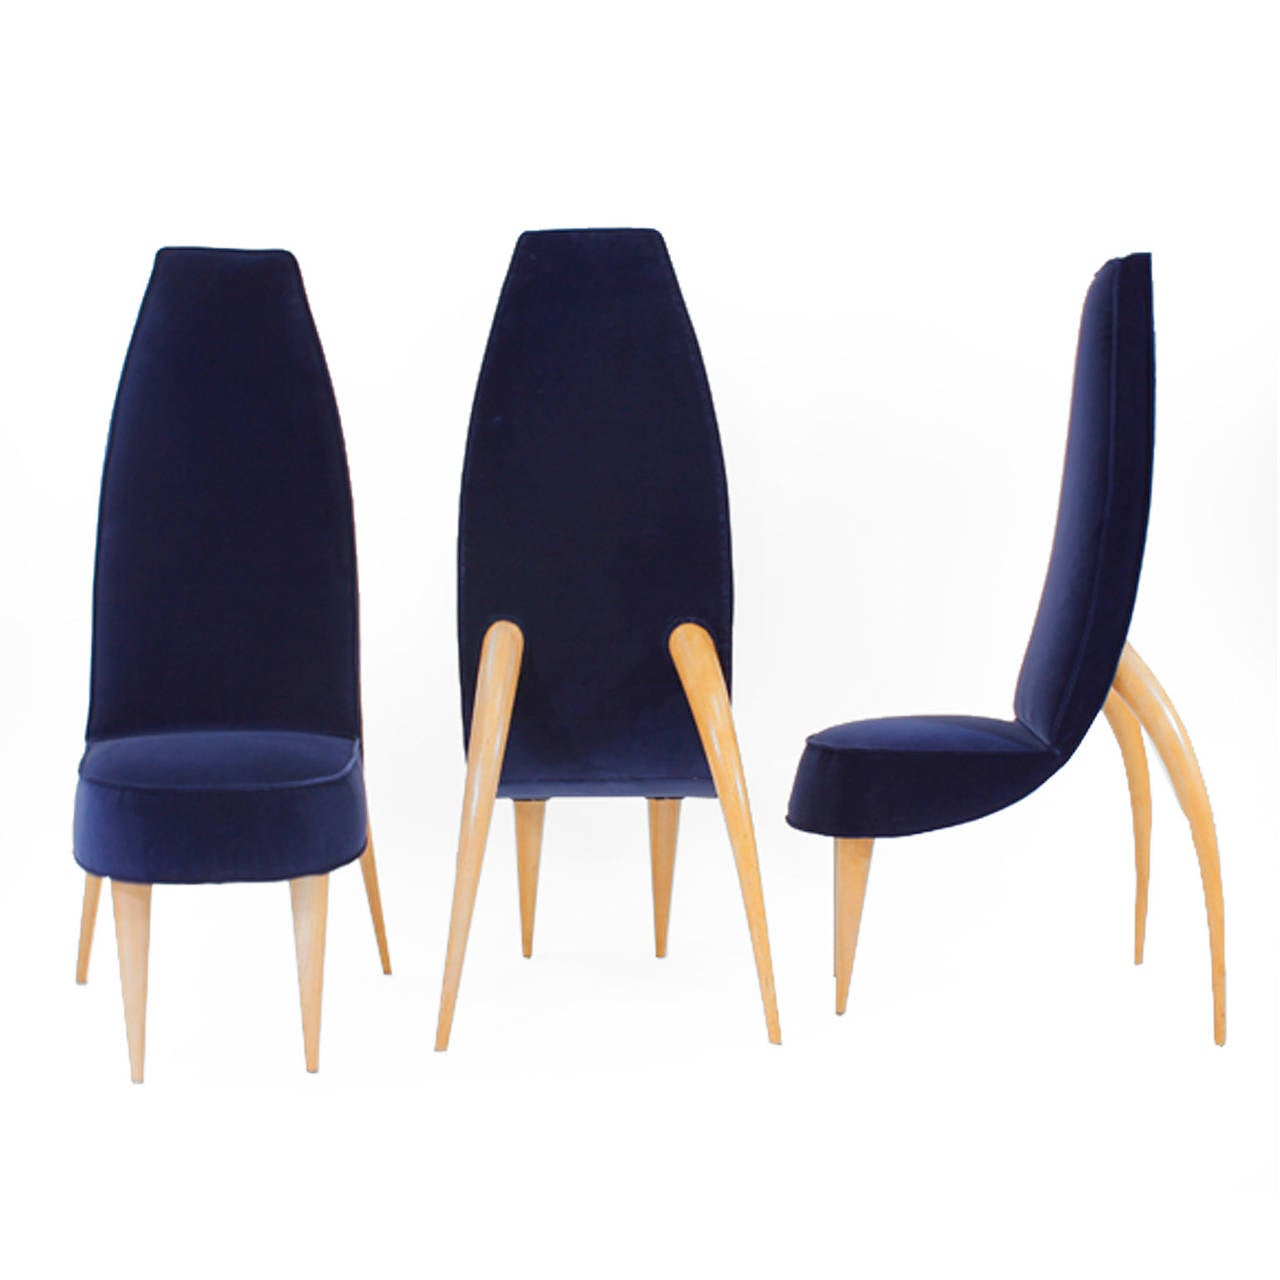 Set of six chairs made in solid wood upholstered in Klein blue cotton velvet legged in birch wood in zoomorphic form.